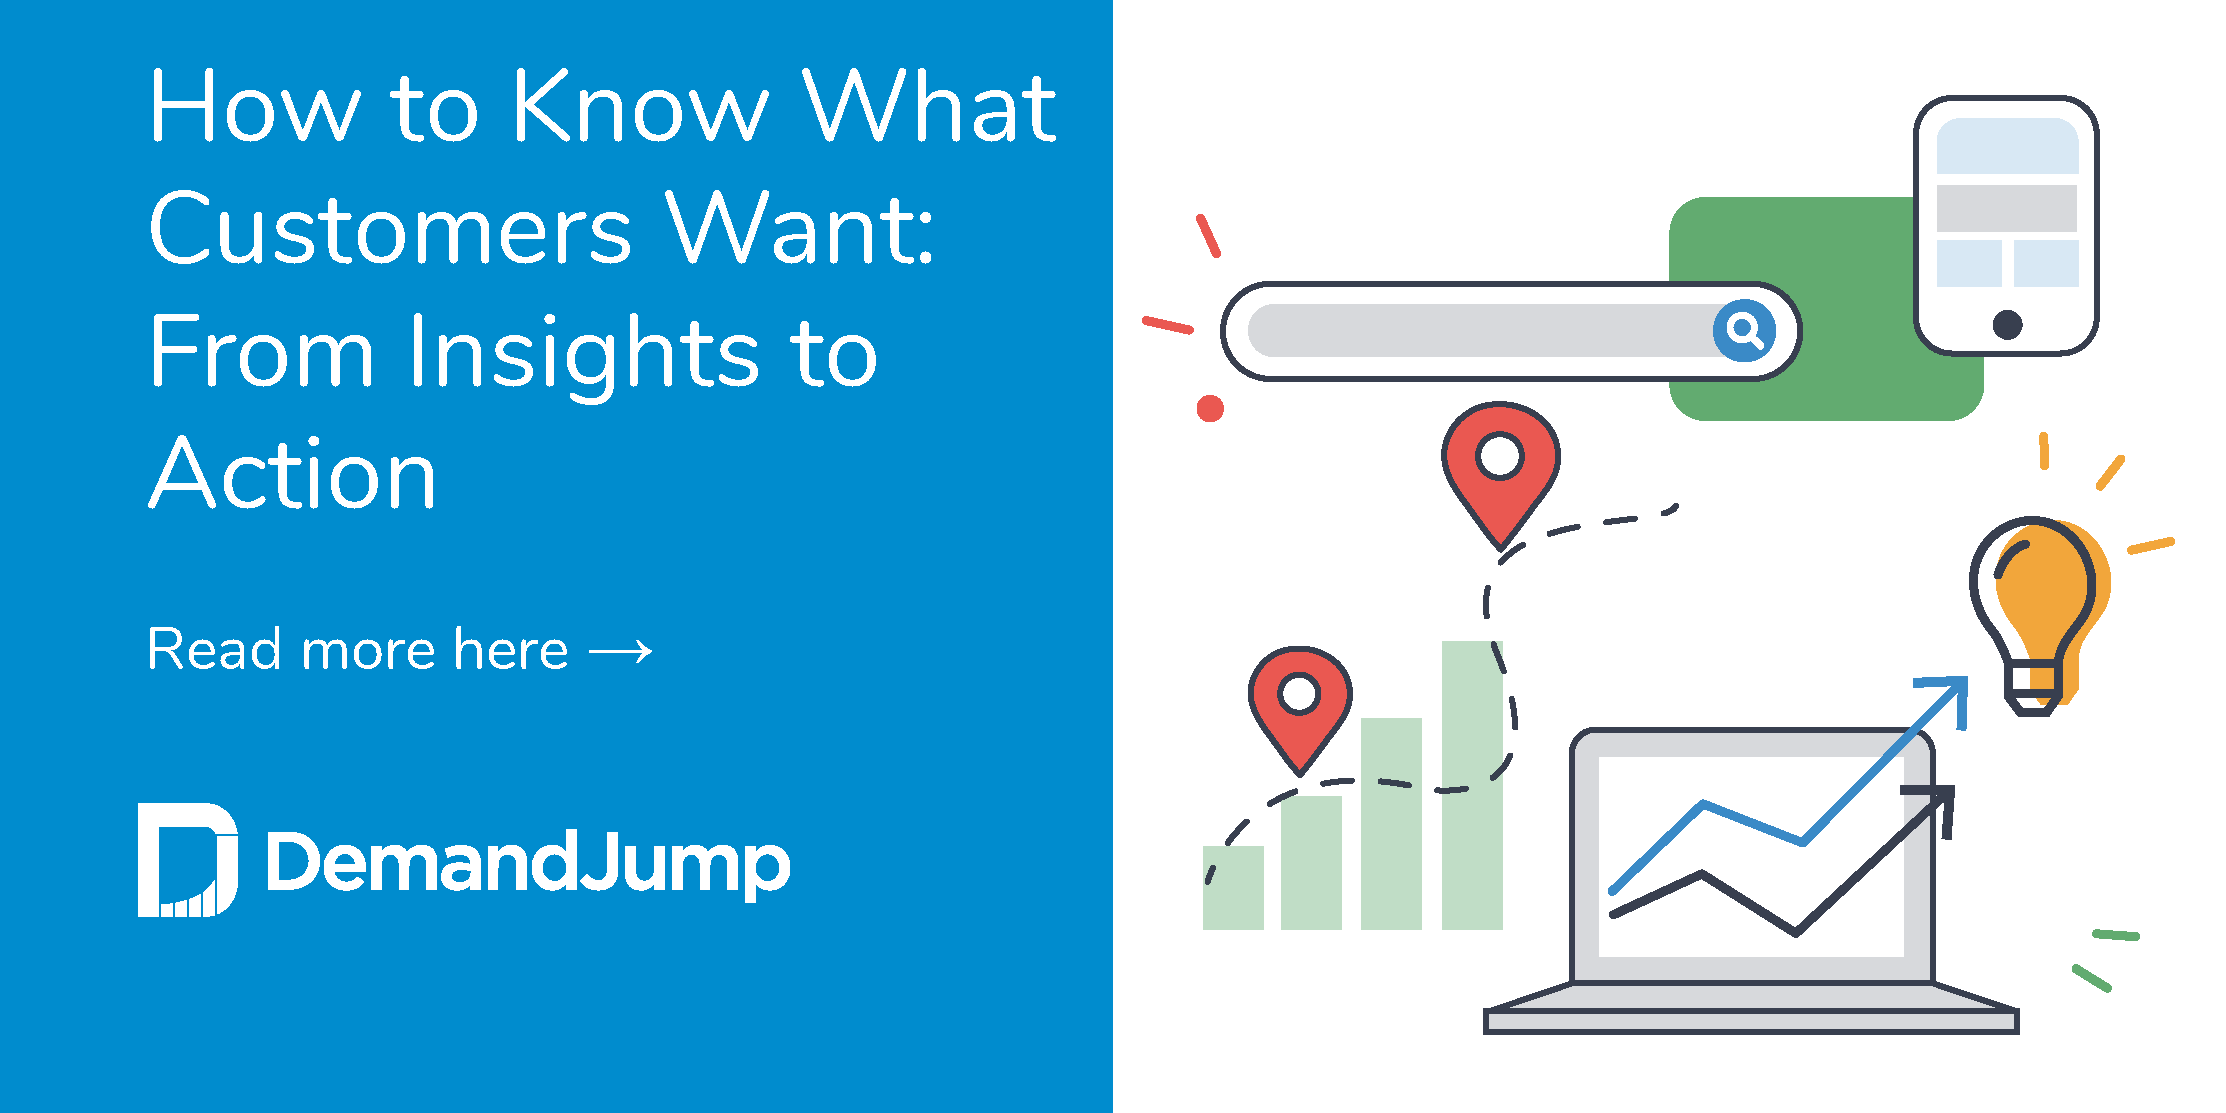 Use Industry Trends to Know What Customers are Searching